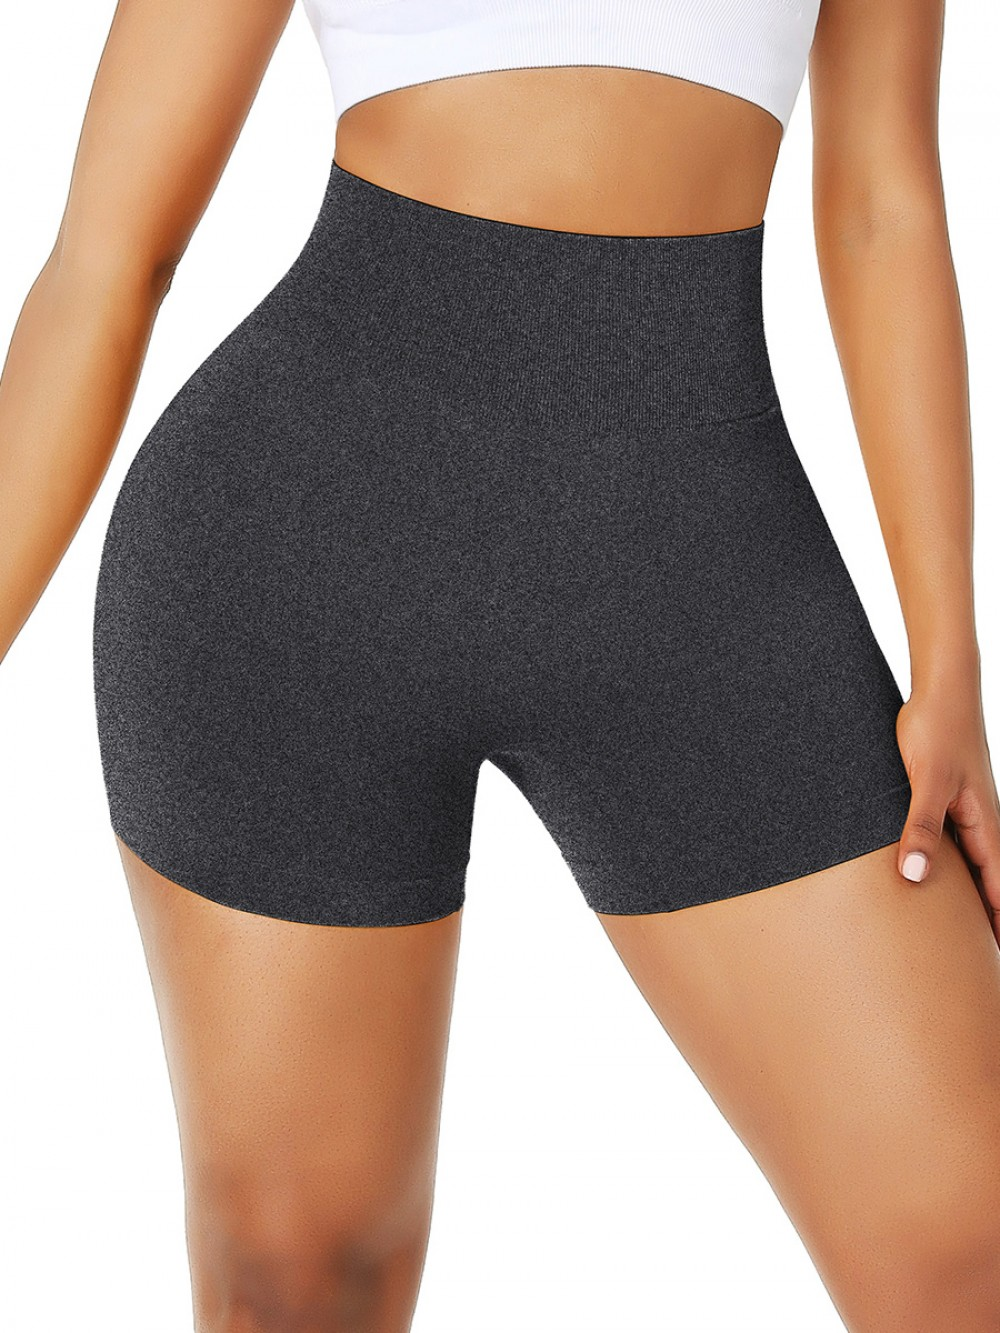 Black High Waist Stretch Gym Shorts No Pockets Solid Color Fabulous Fit